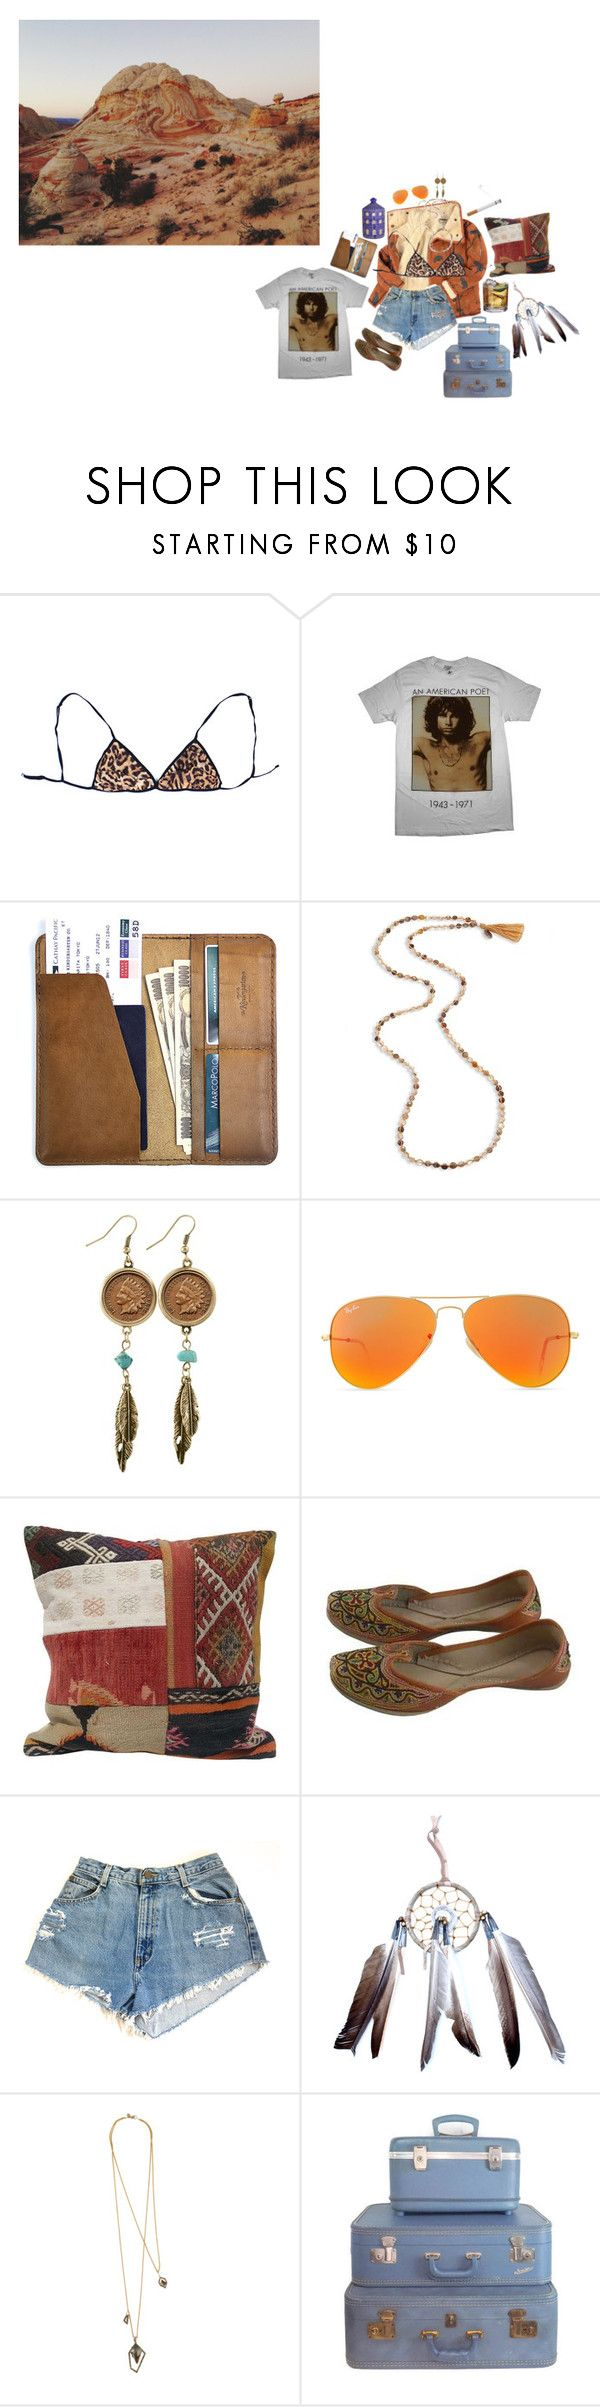 """""""sagittarius."""" by hipstagraminstamatic ❤ liked on Polyvore featuring Scotch & Soda, UNIF, CO, Chan Luu, American Coin Treasures, Ray-Ban, Child Of Wild, Alexis Bittar, Retrò and Fornasetti"""